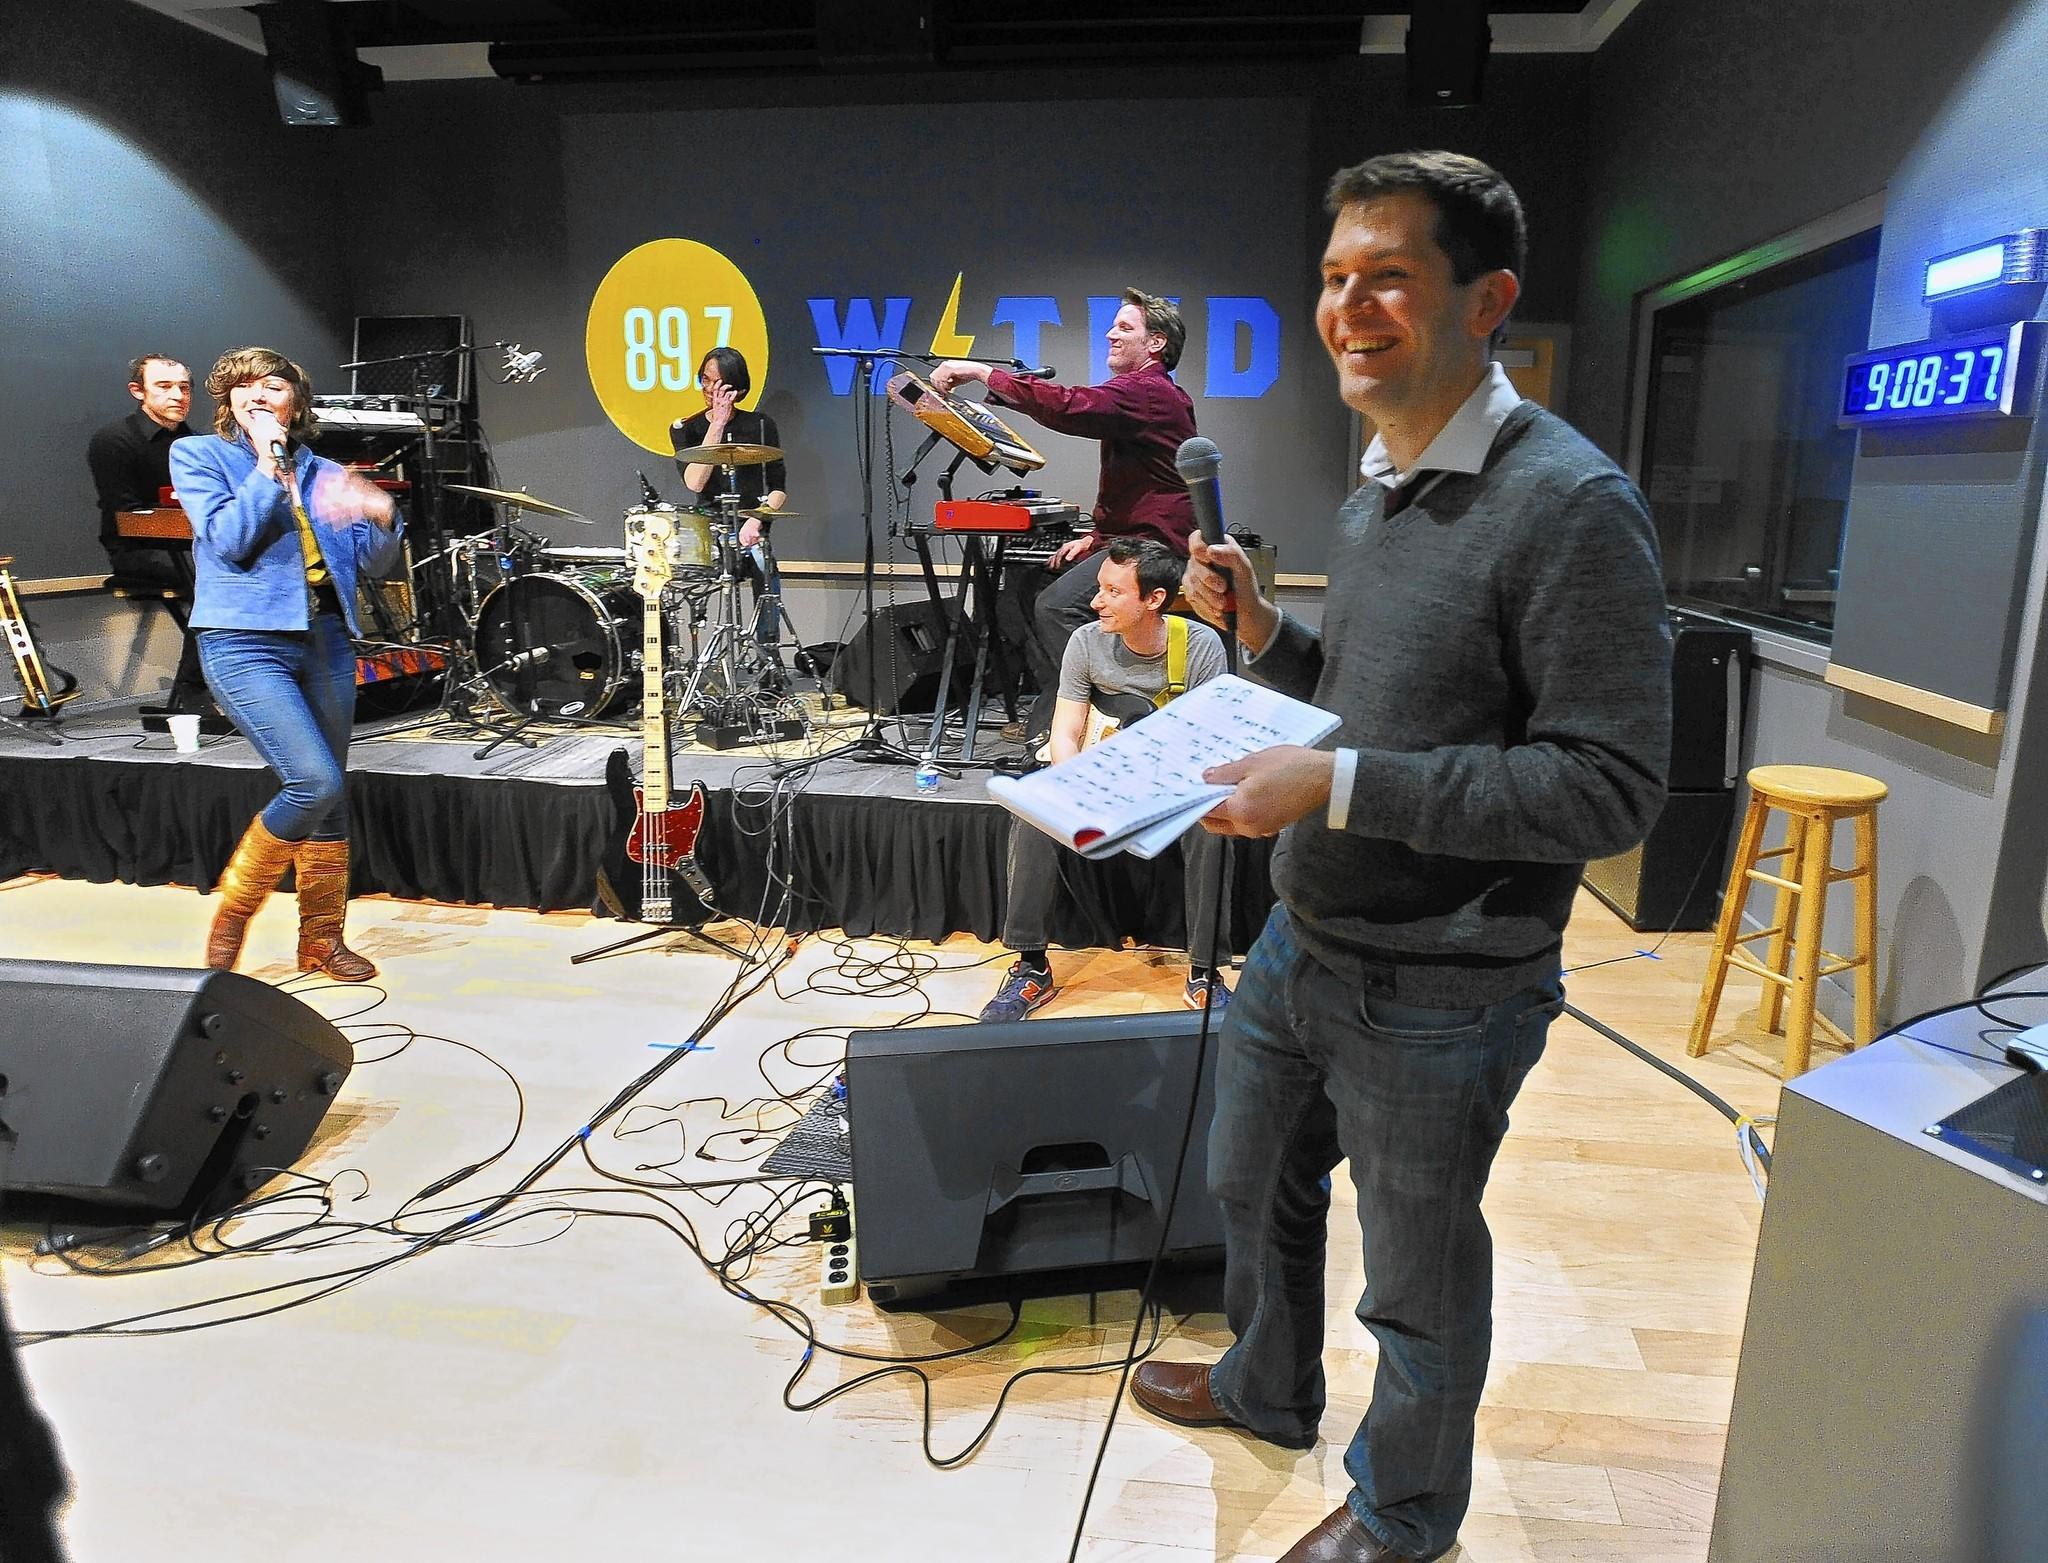 Public radio station WTMD broadcasts a live on-air show complete with studio audience at its new location in Towson. The Baltimore Hit Parade show host Sam Sessa, right, interviews members of the local band Celebration after one of their songs in the show.